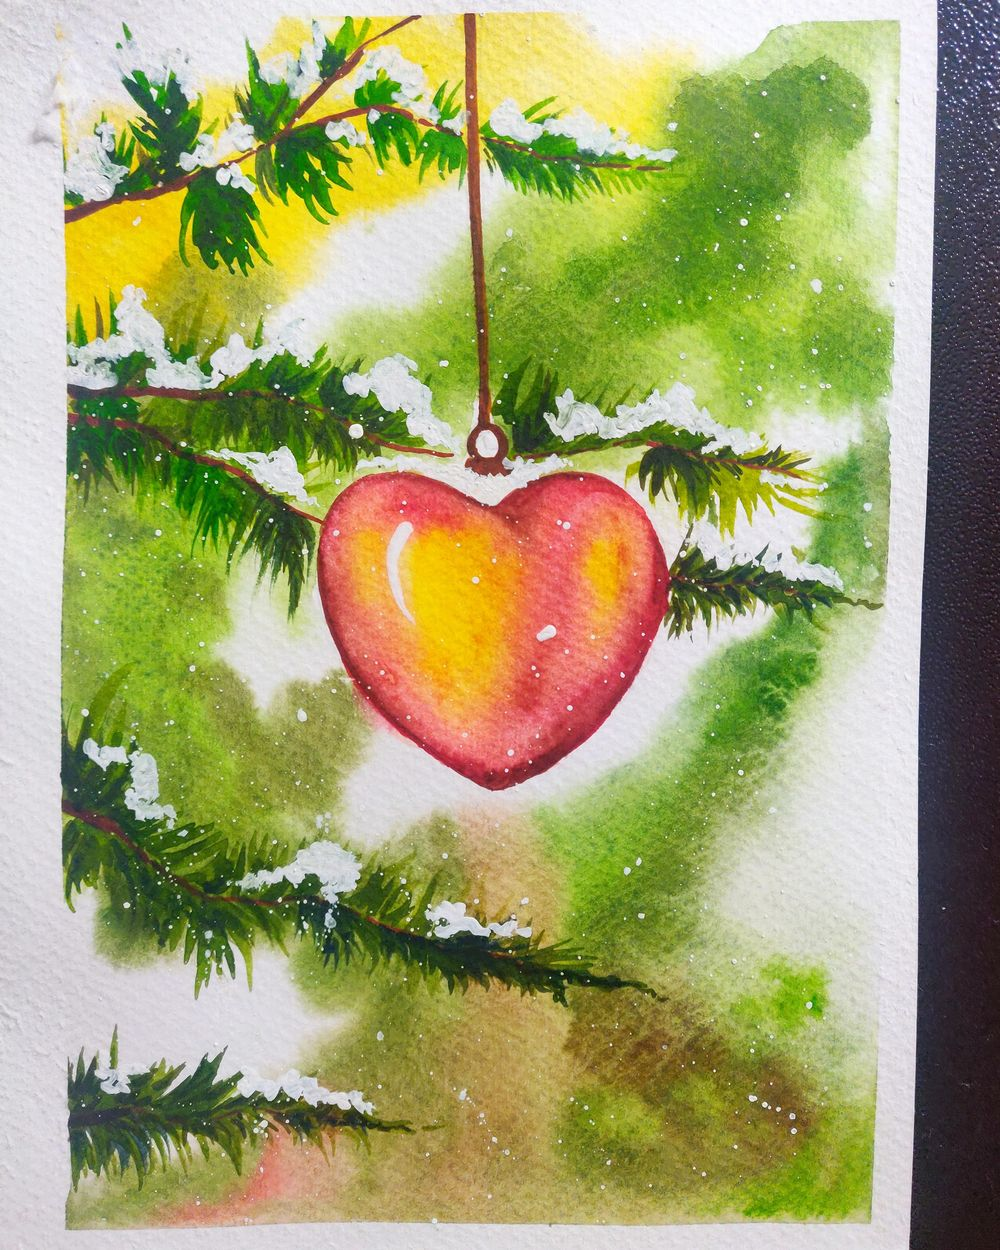 Countdown to Christmas - image 13 - student project